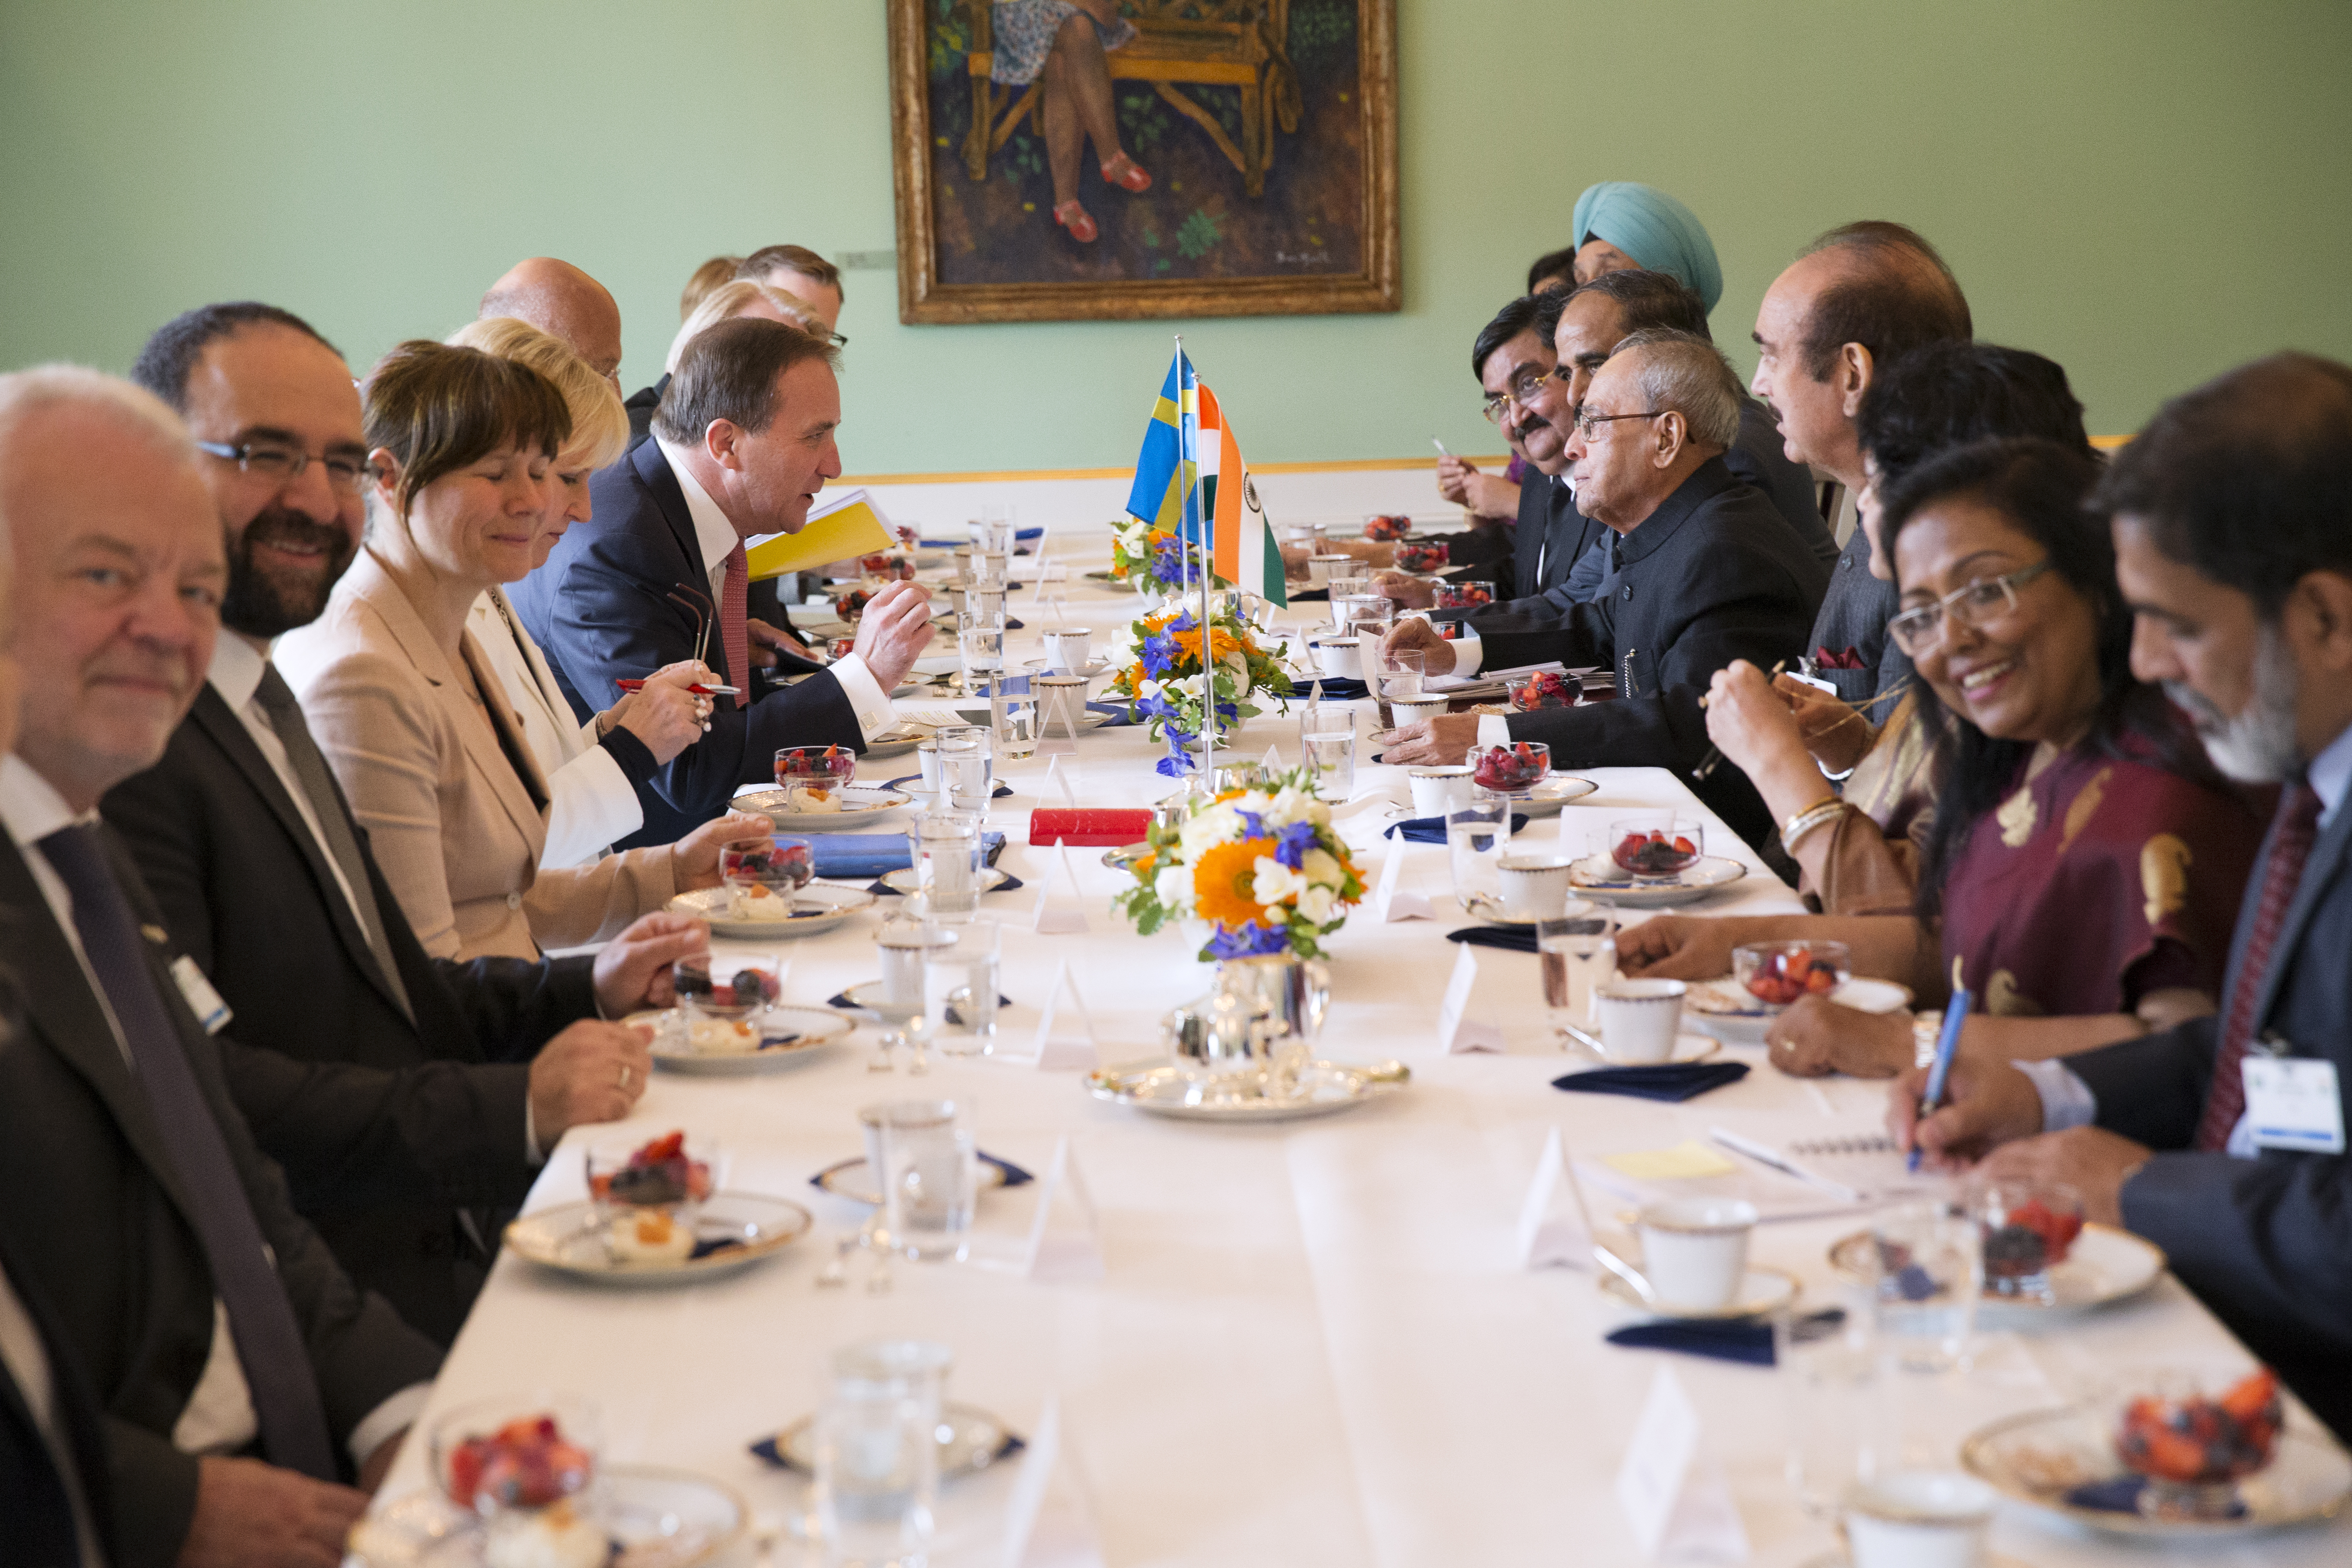 India's President Shri Pranab Mukherjee at a meeting at Rosenbad during the State Visit to Sweden.